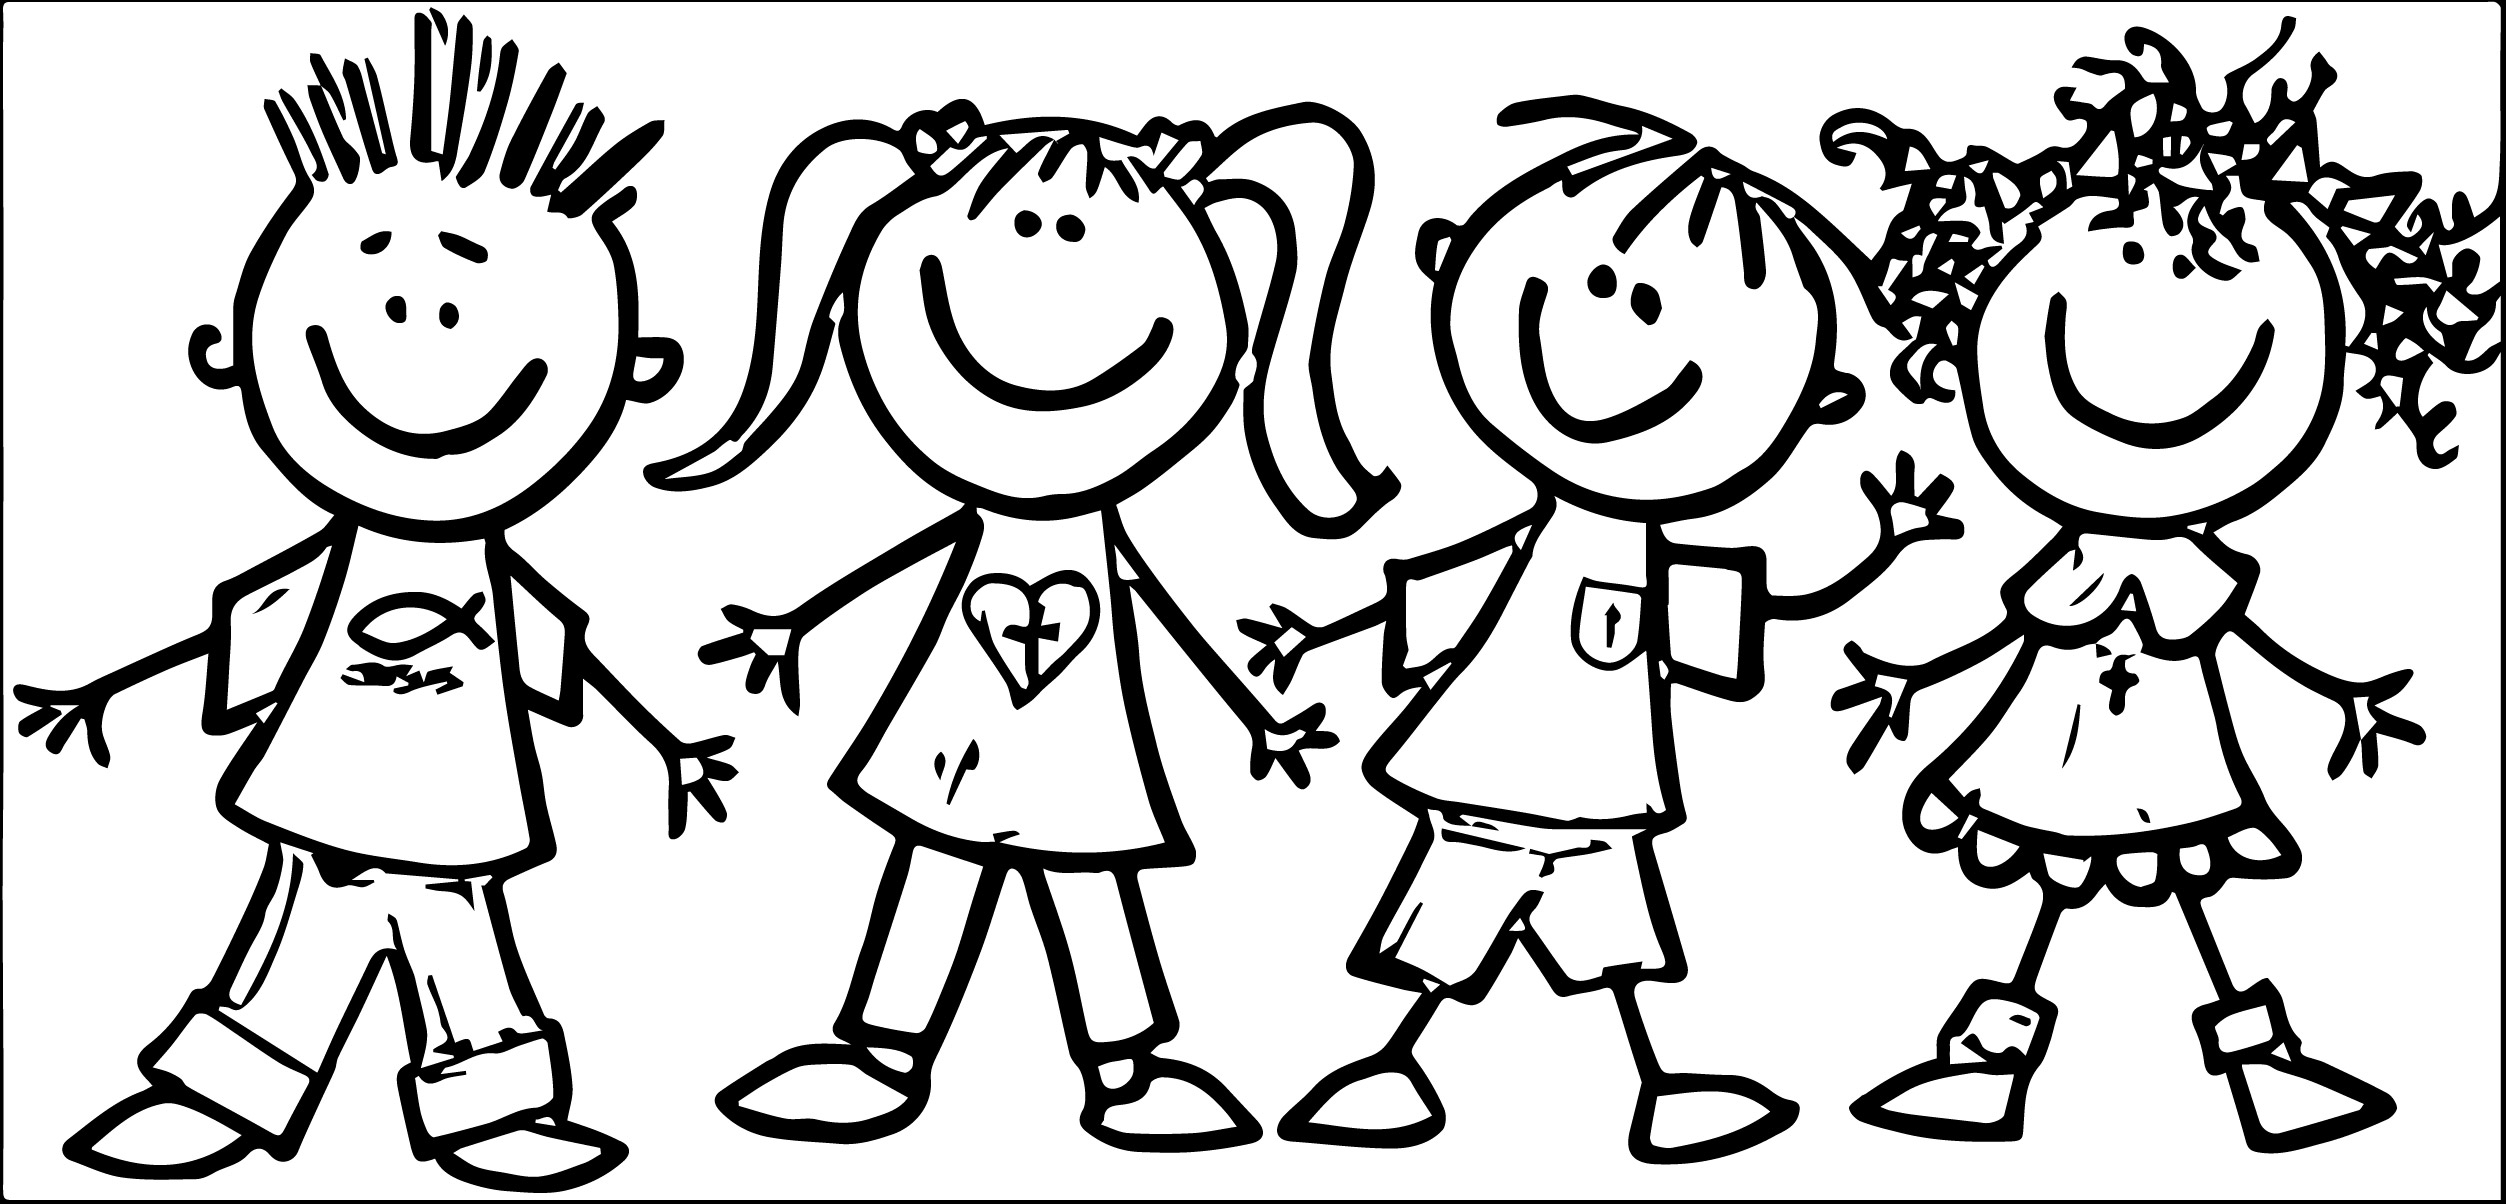 Free Preschool Newsletter Cliparts, Download Free Clip Art